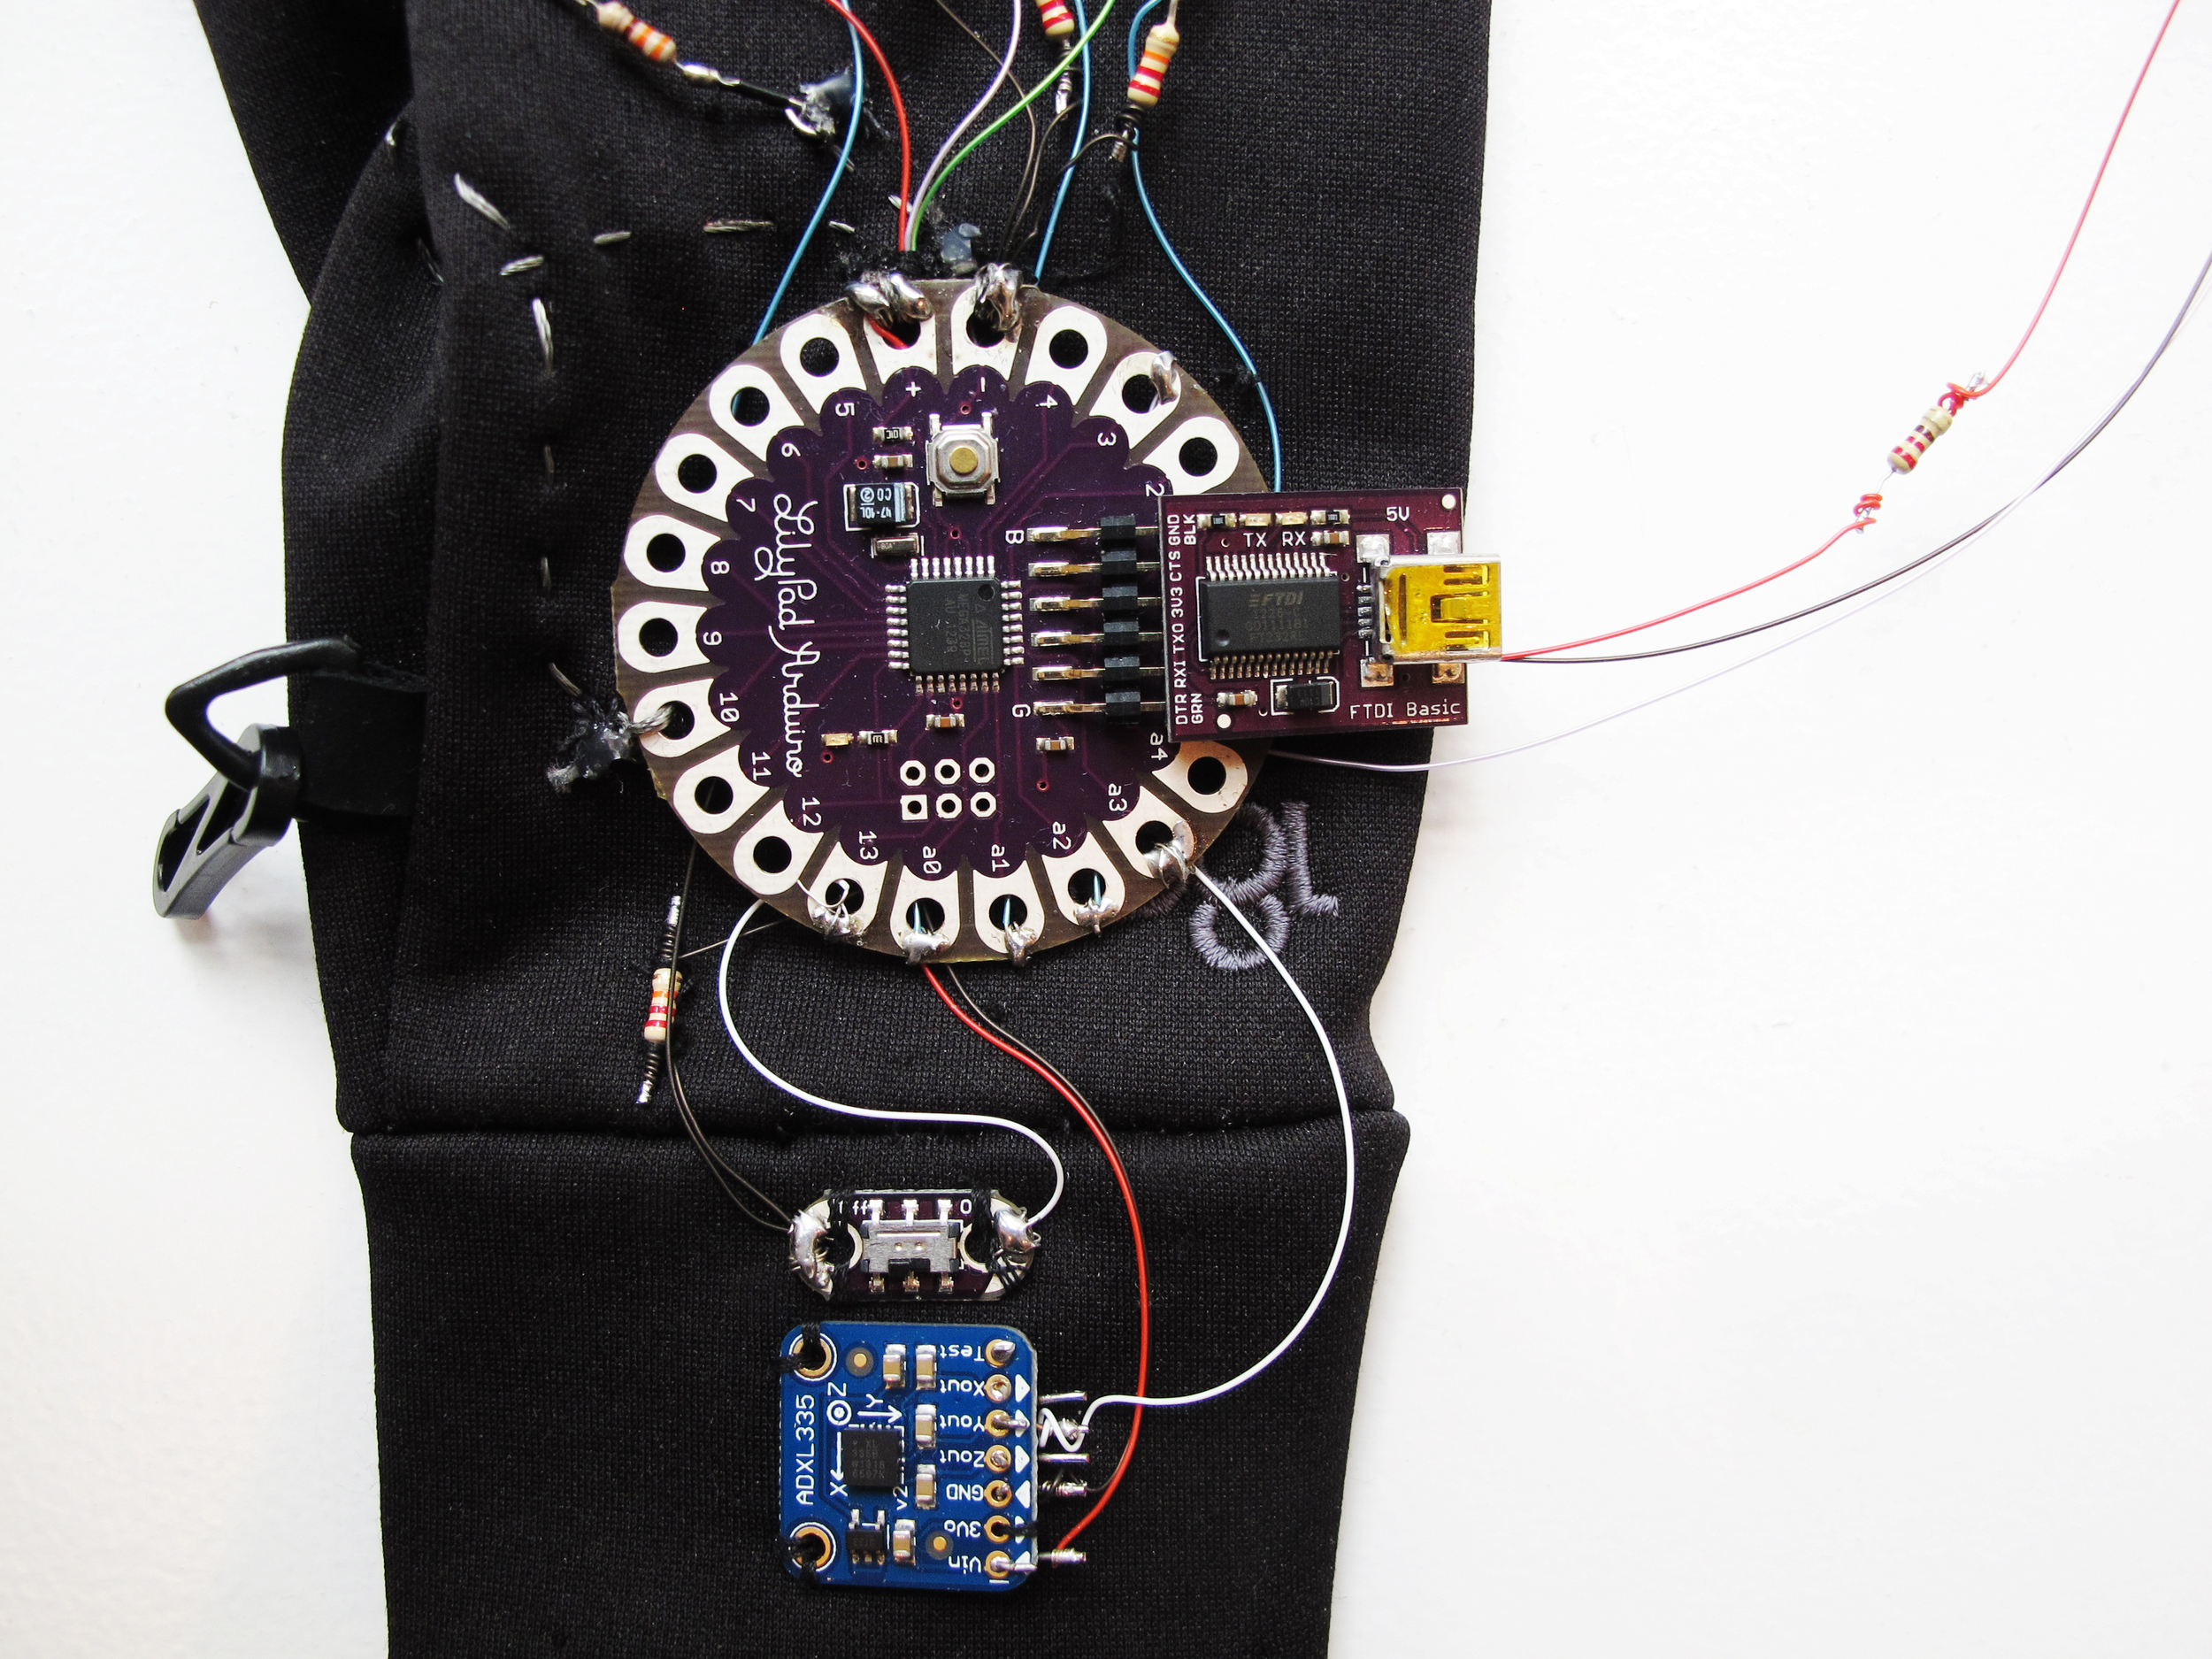 For circuit board, we used the Arduino Lilypad, which is designed for wearables.